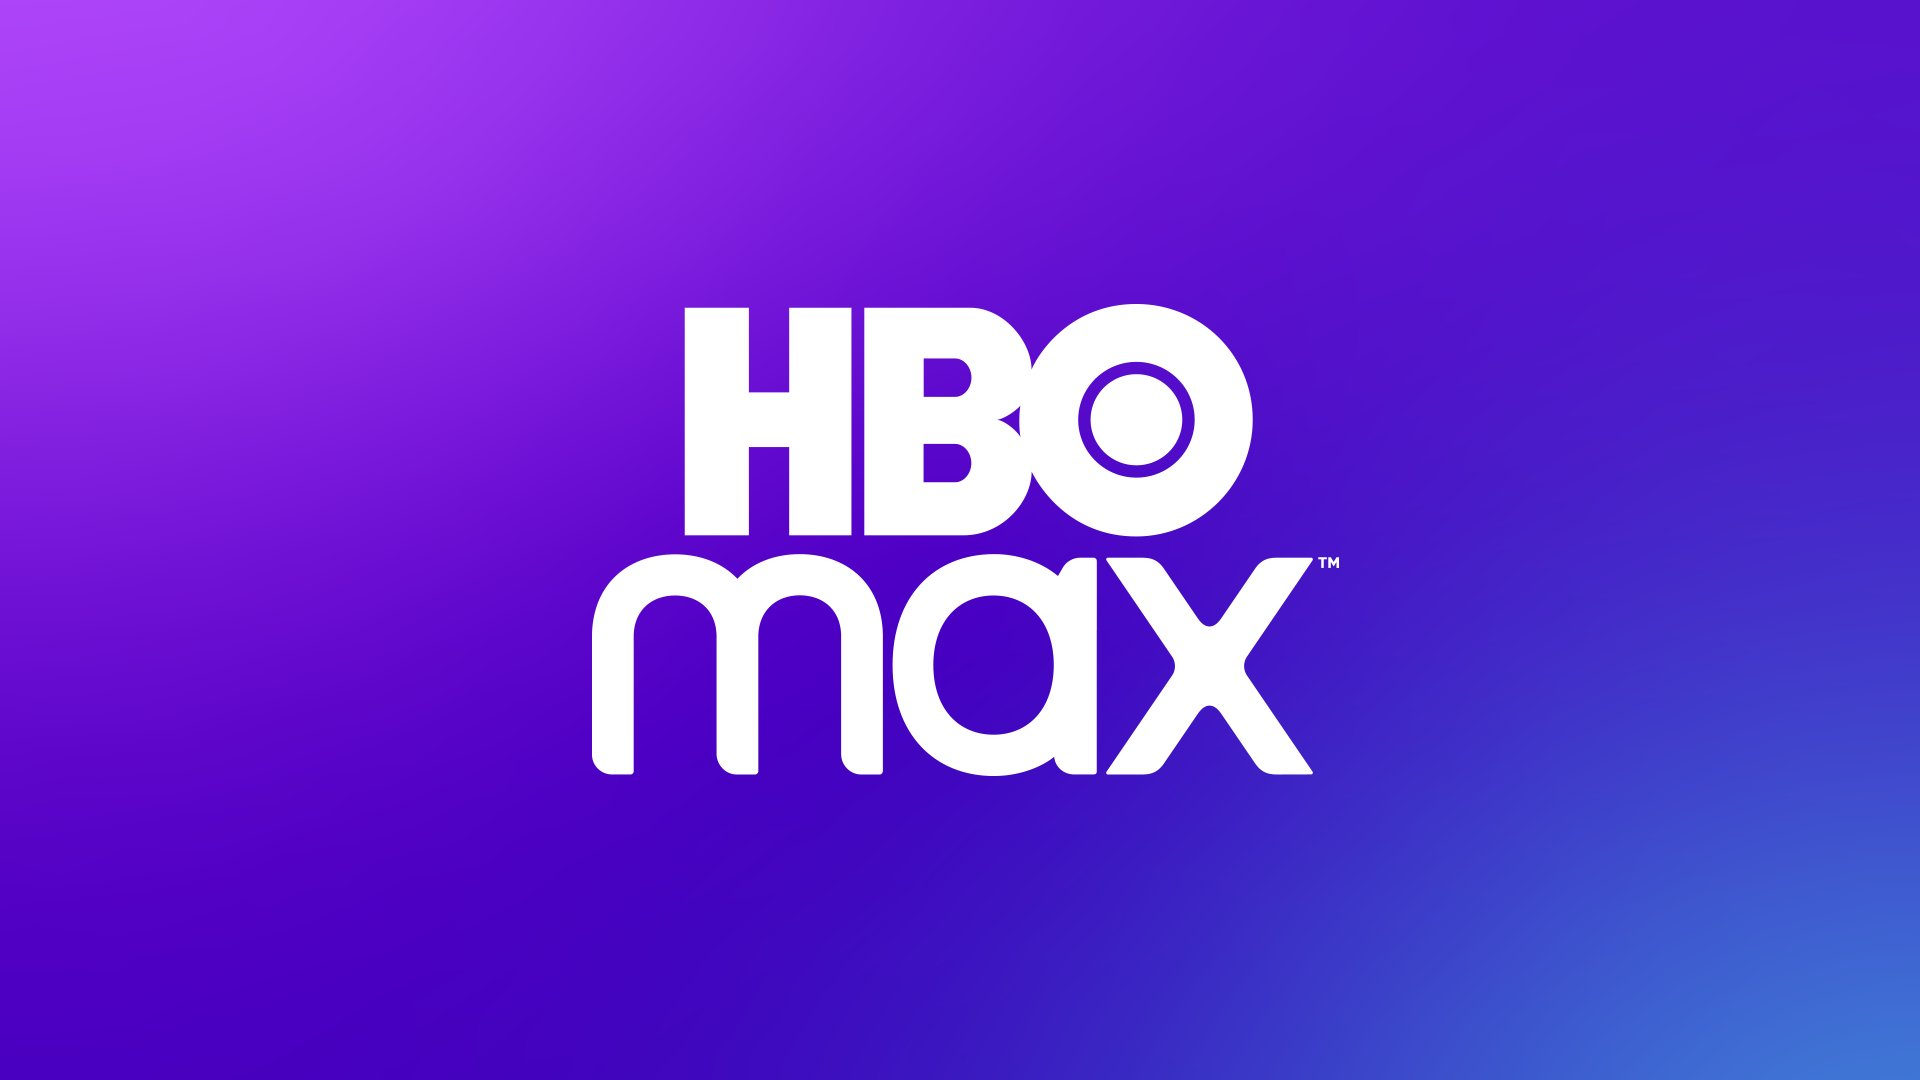 Roku Signs Deal to Carry HBO Max, Ending Standoff